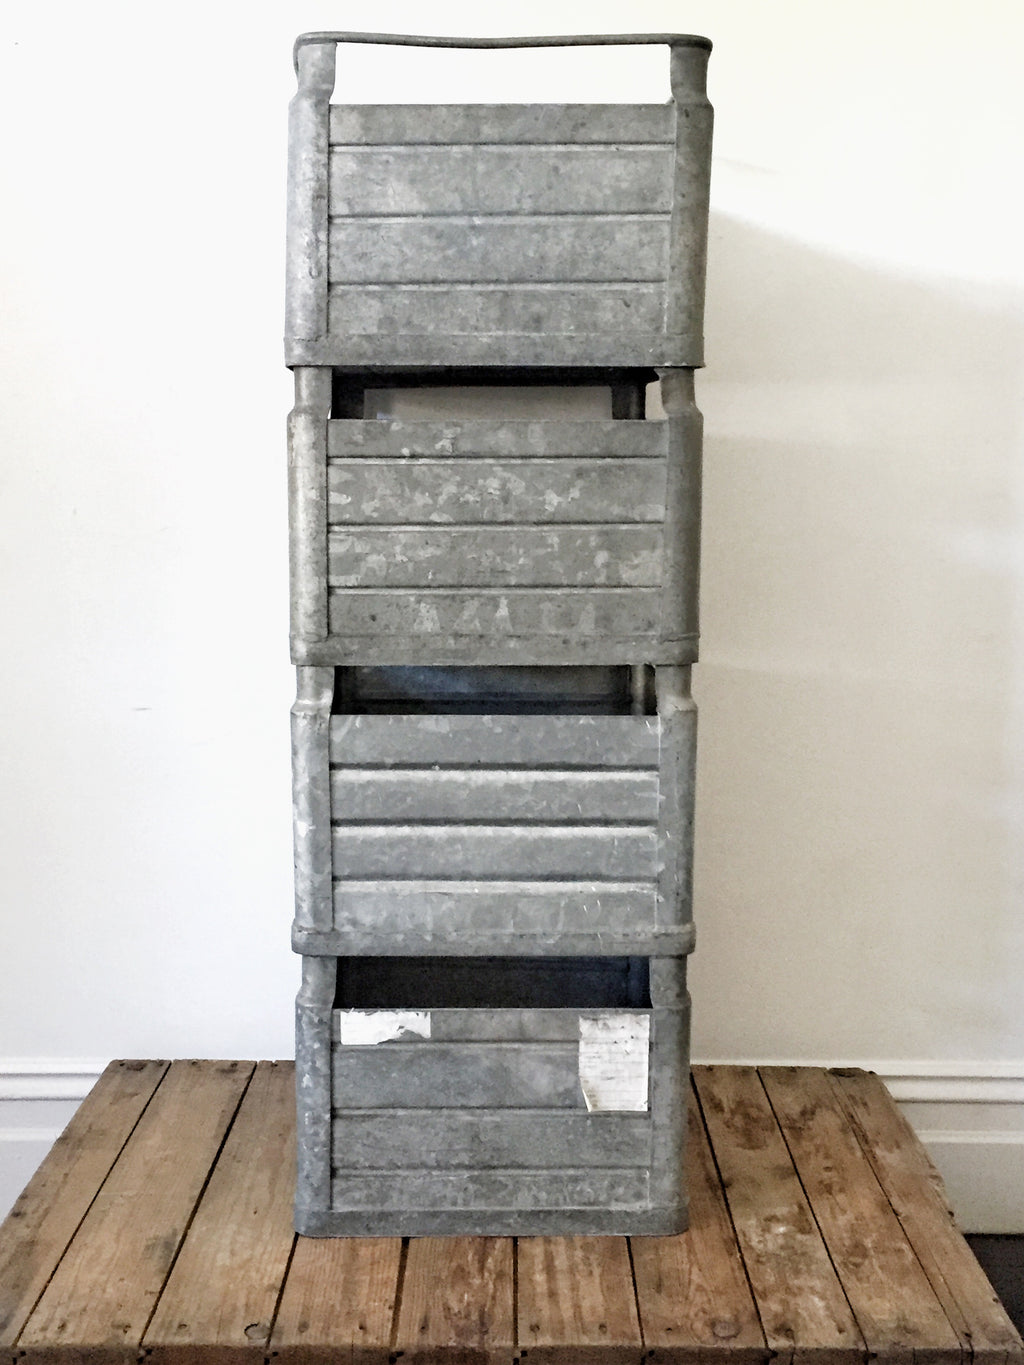 Stackable vintage metal storage bins